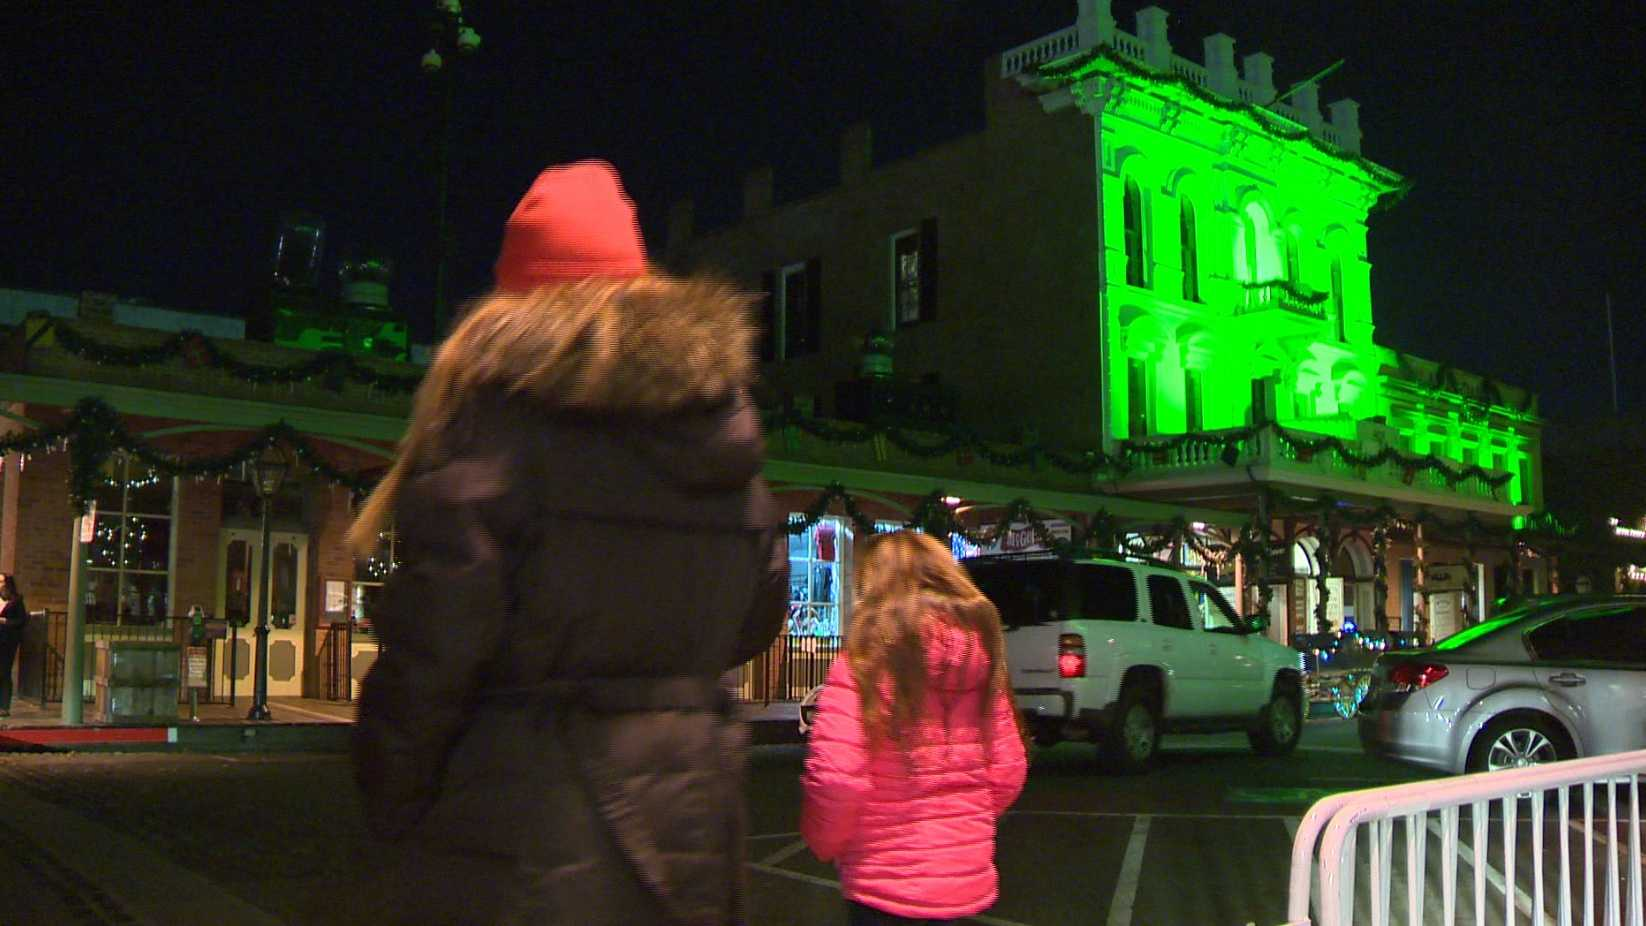 People walk through Old Sacramento on Wednesday, Dec. 30, 2015. Sacramento police are increasing security in the area ahead of the New Year's Eve celebrations.